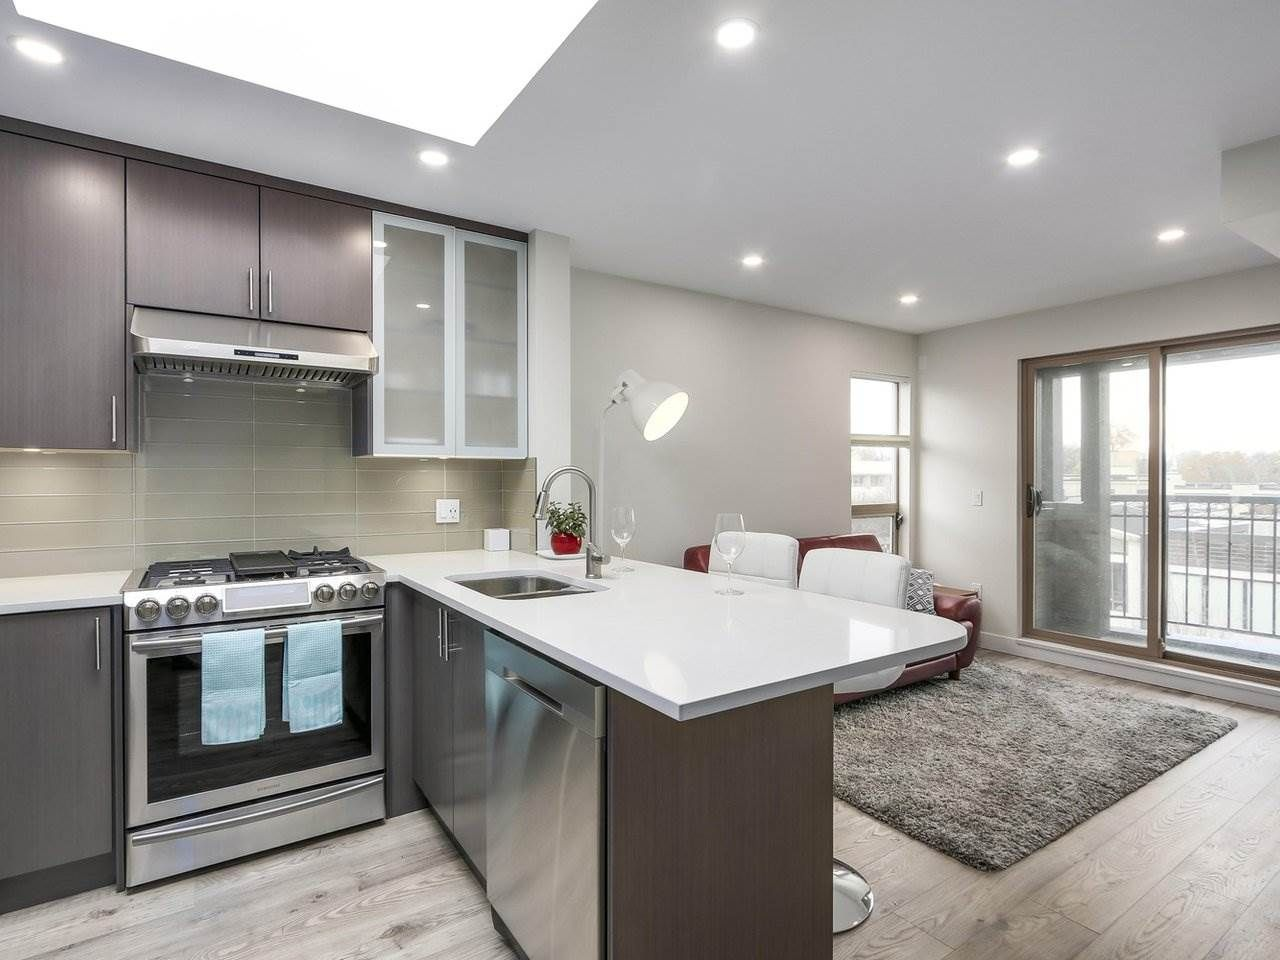 """Main Photo: 401 688 E 16TH Avenue in Vancouver: Fraser VE Condo for sale in """"VINTAGE EASTSIDE"""" (Vancouver East)  : MLS®# R2223422"""